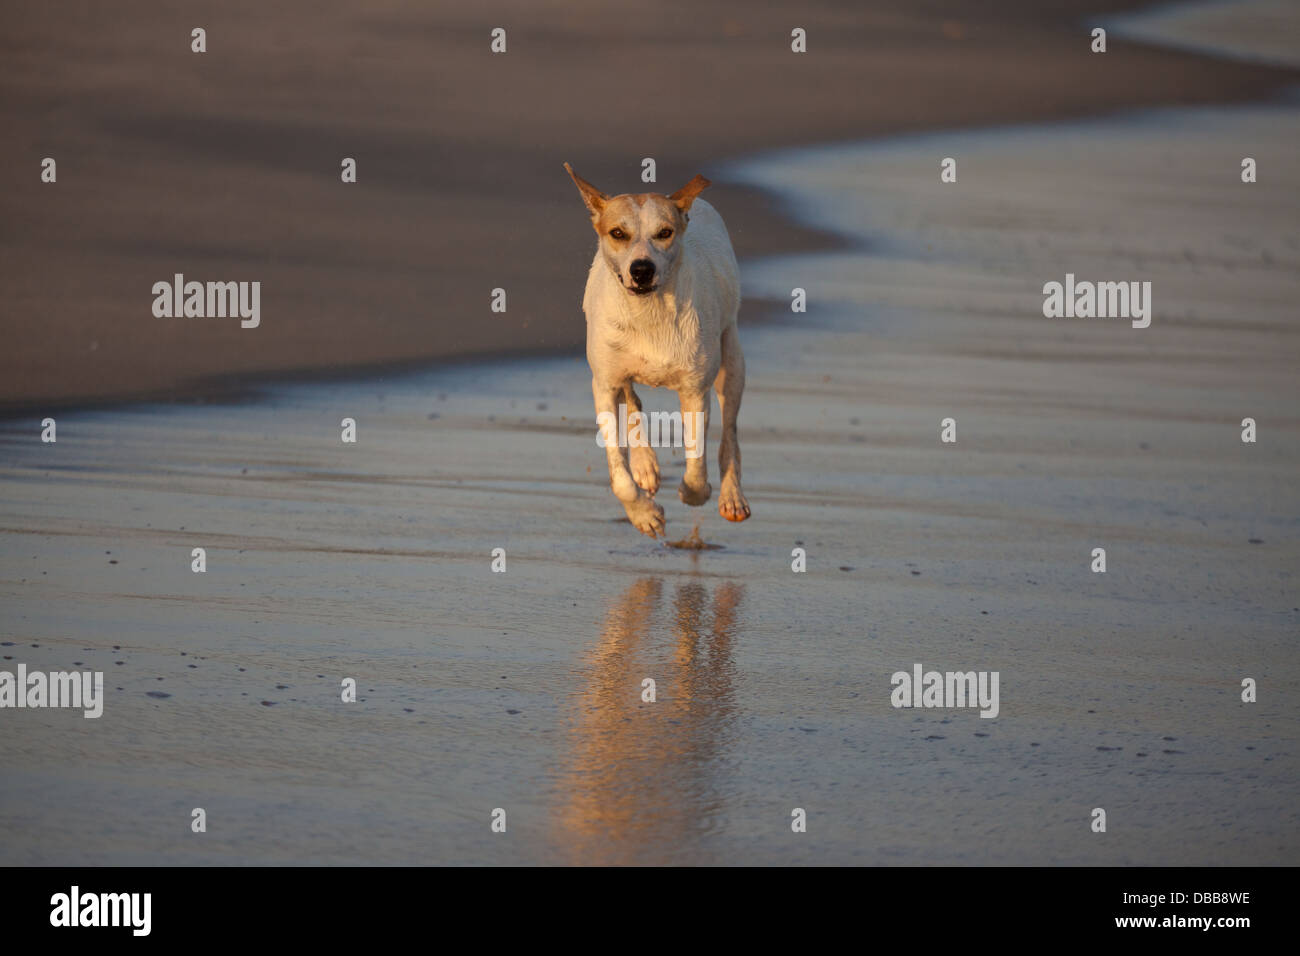 Running dog and reflection on the Pacific coast, Cocle province, Republic of Panama. - Stock Image